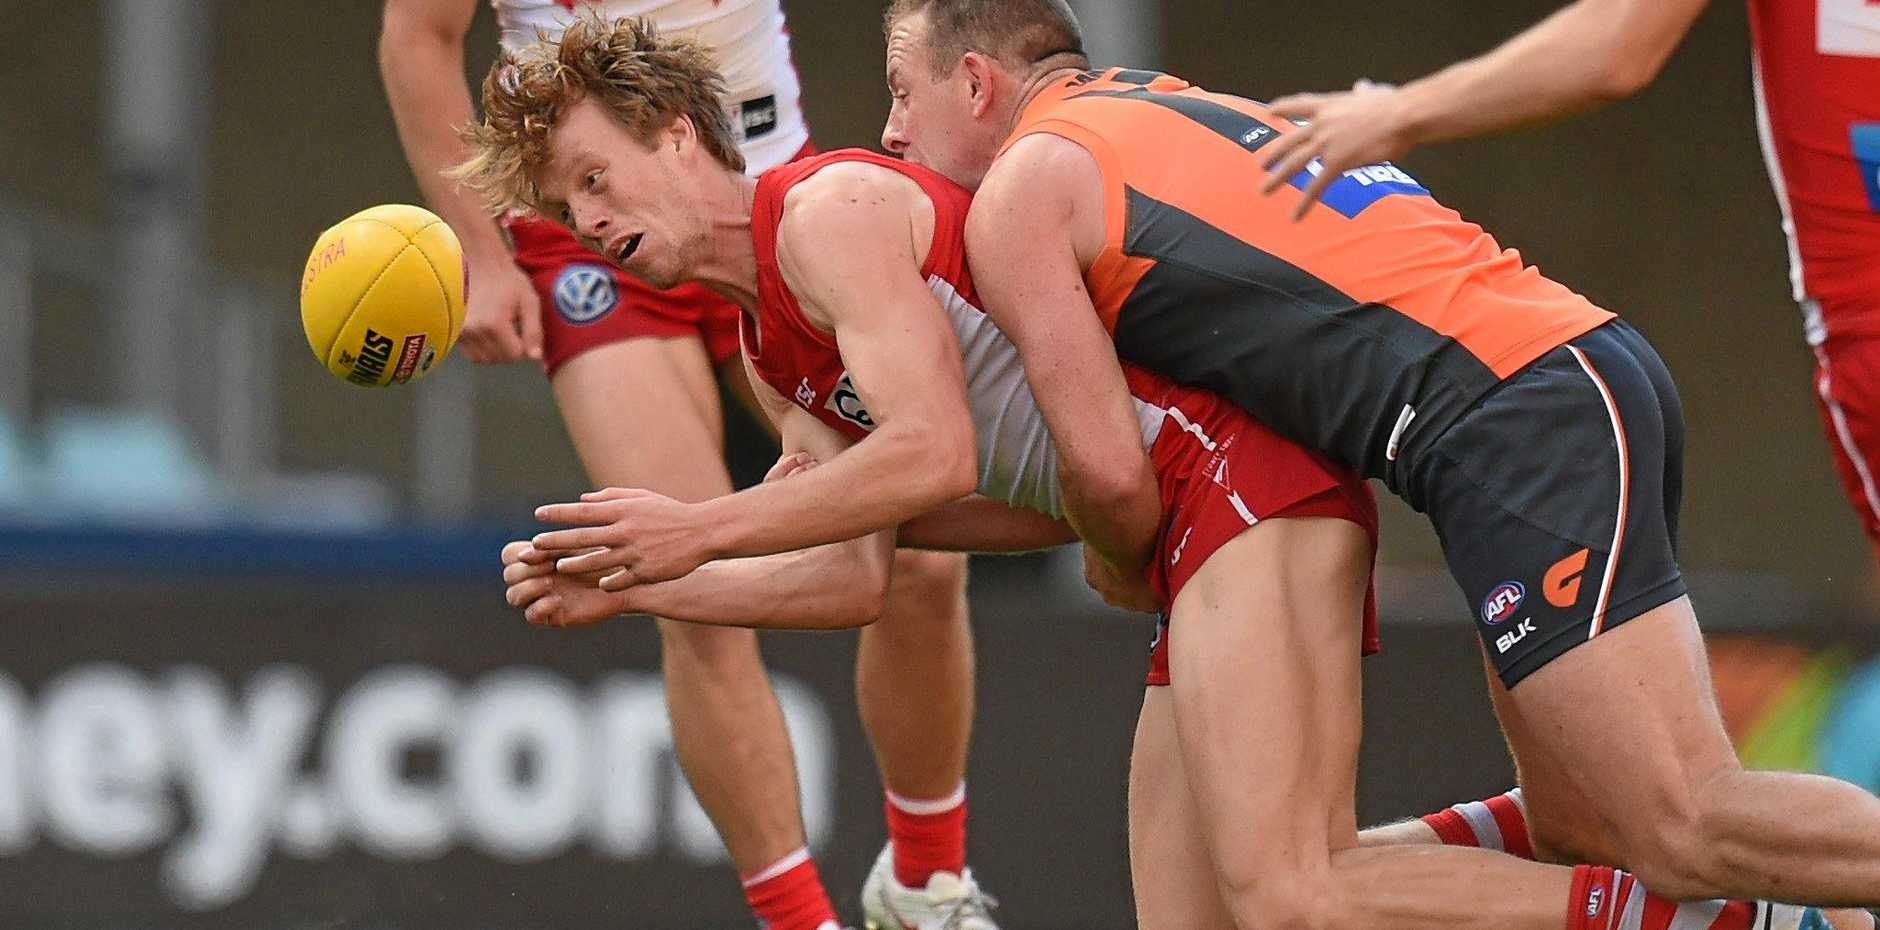 Callum Mills of the Swans losses possession with this tackle from Steve Johnson of the Giants during the first qualifying final.